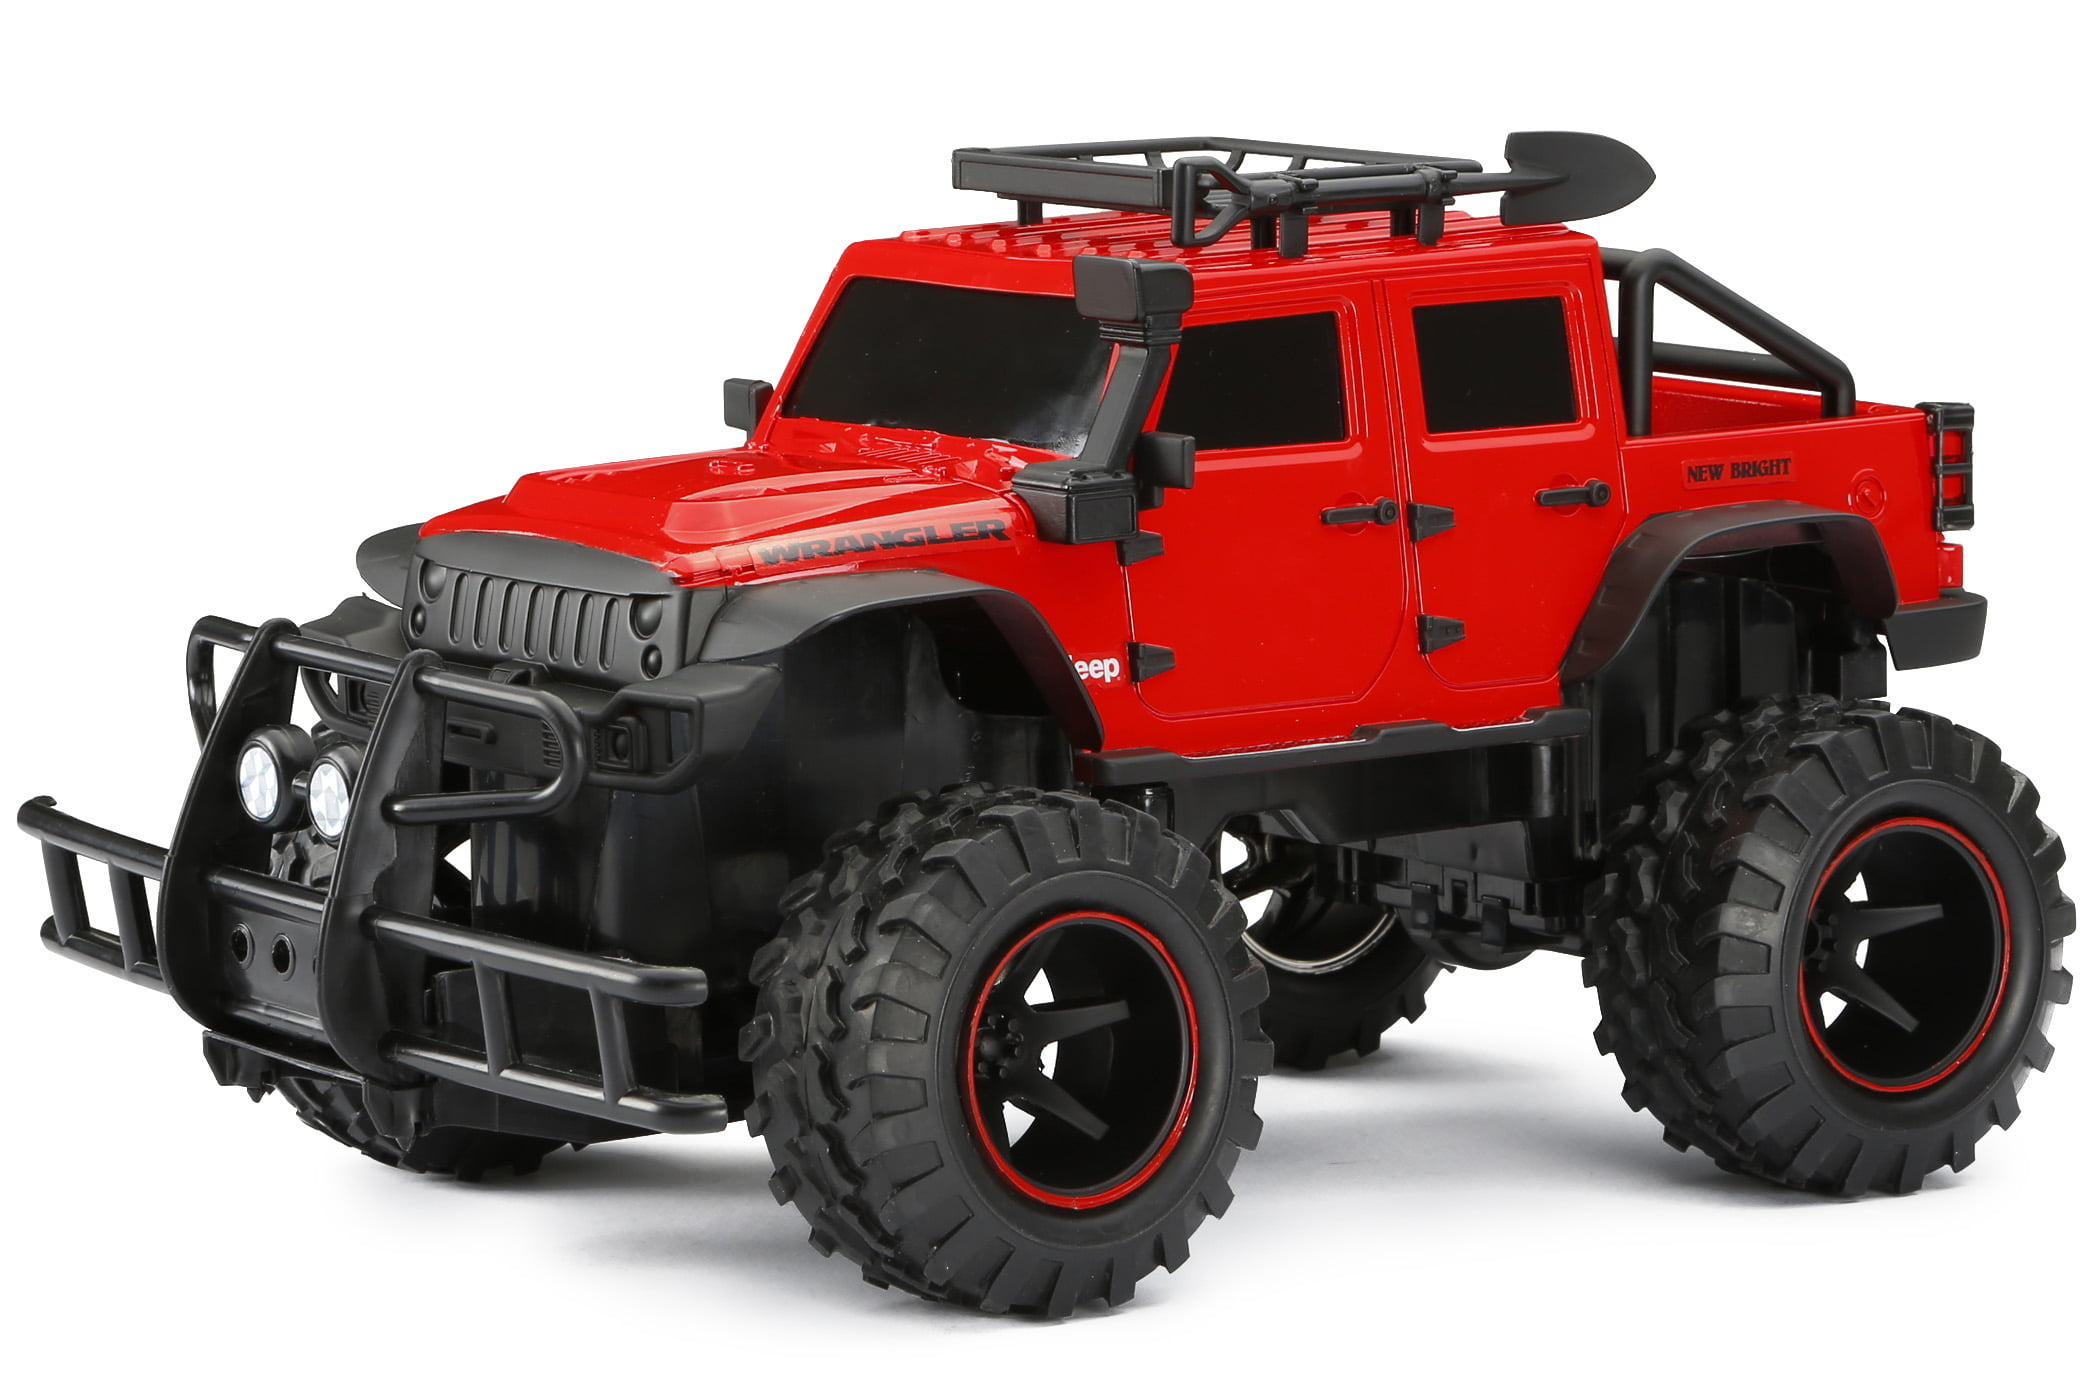 New Bright 1:15 Scale Radio Control 6.4v Jeep Pick Up by New Bright Industrial Co., Ltd.